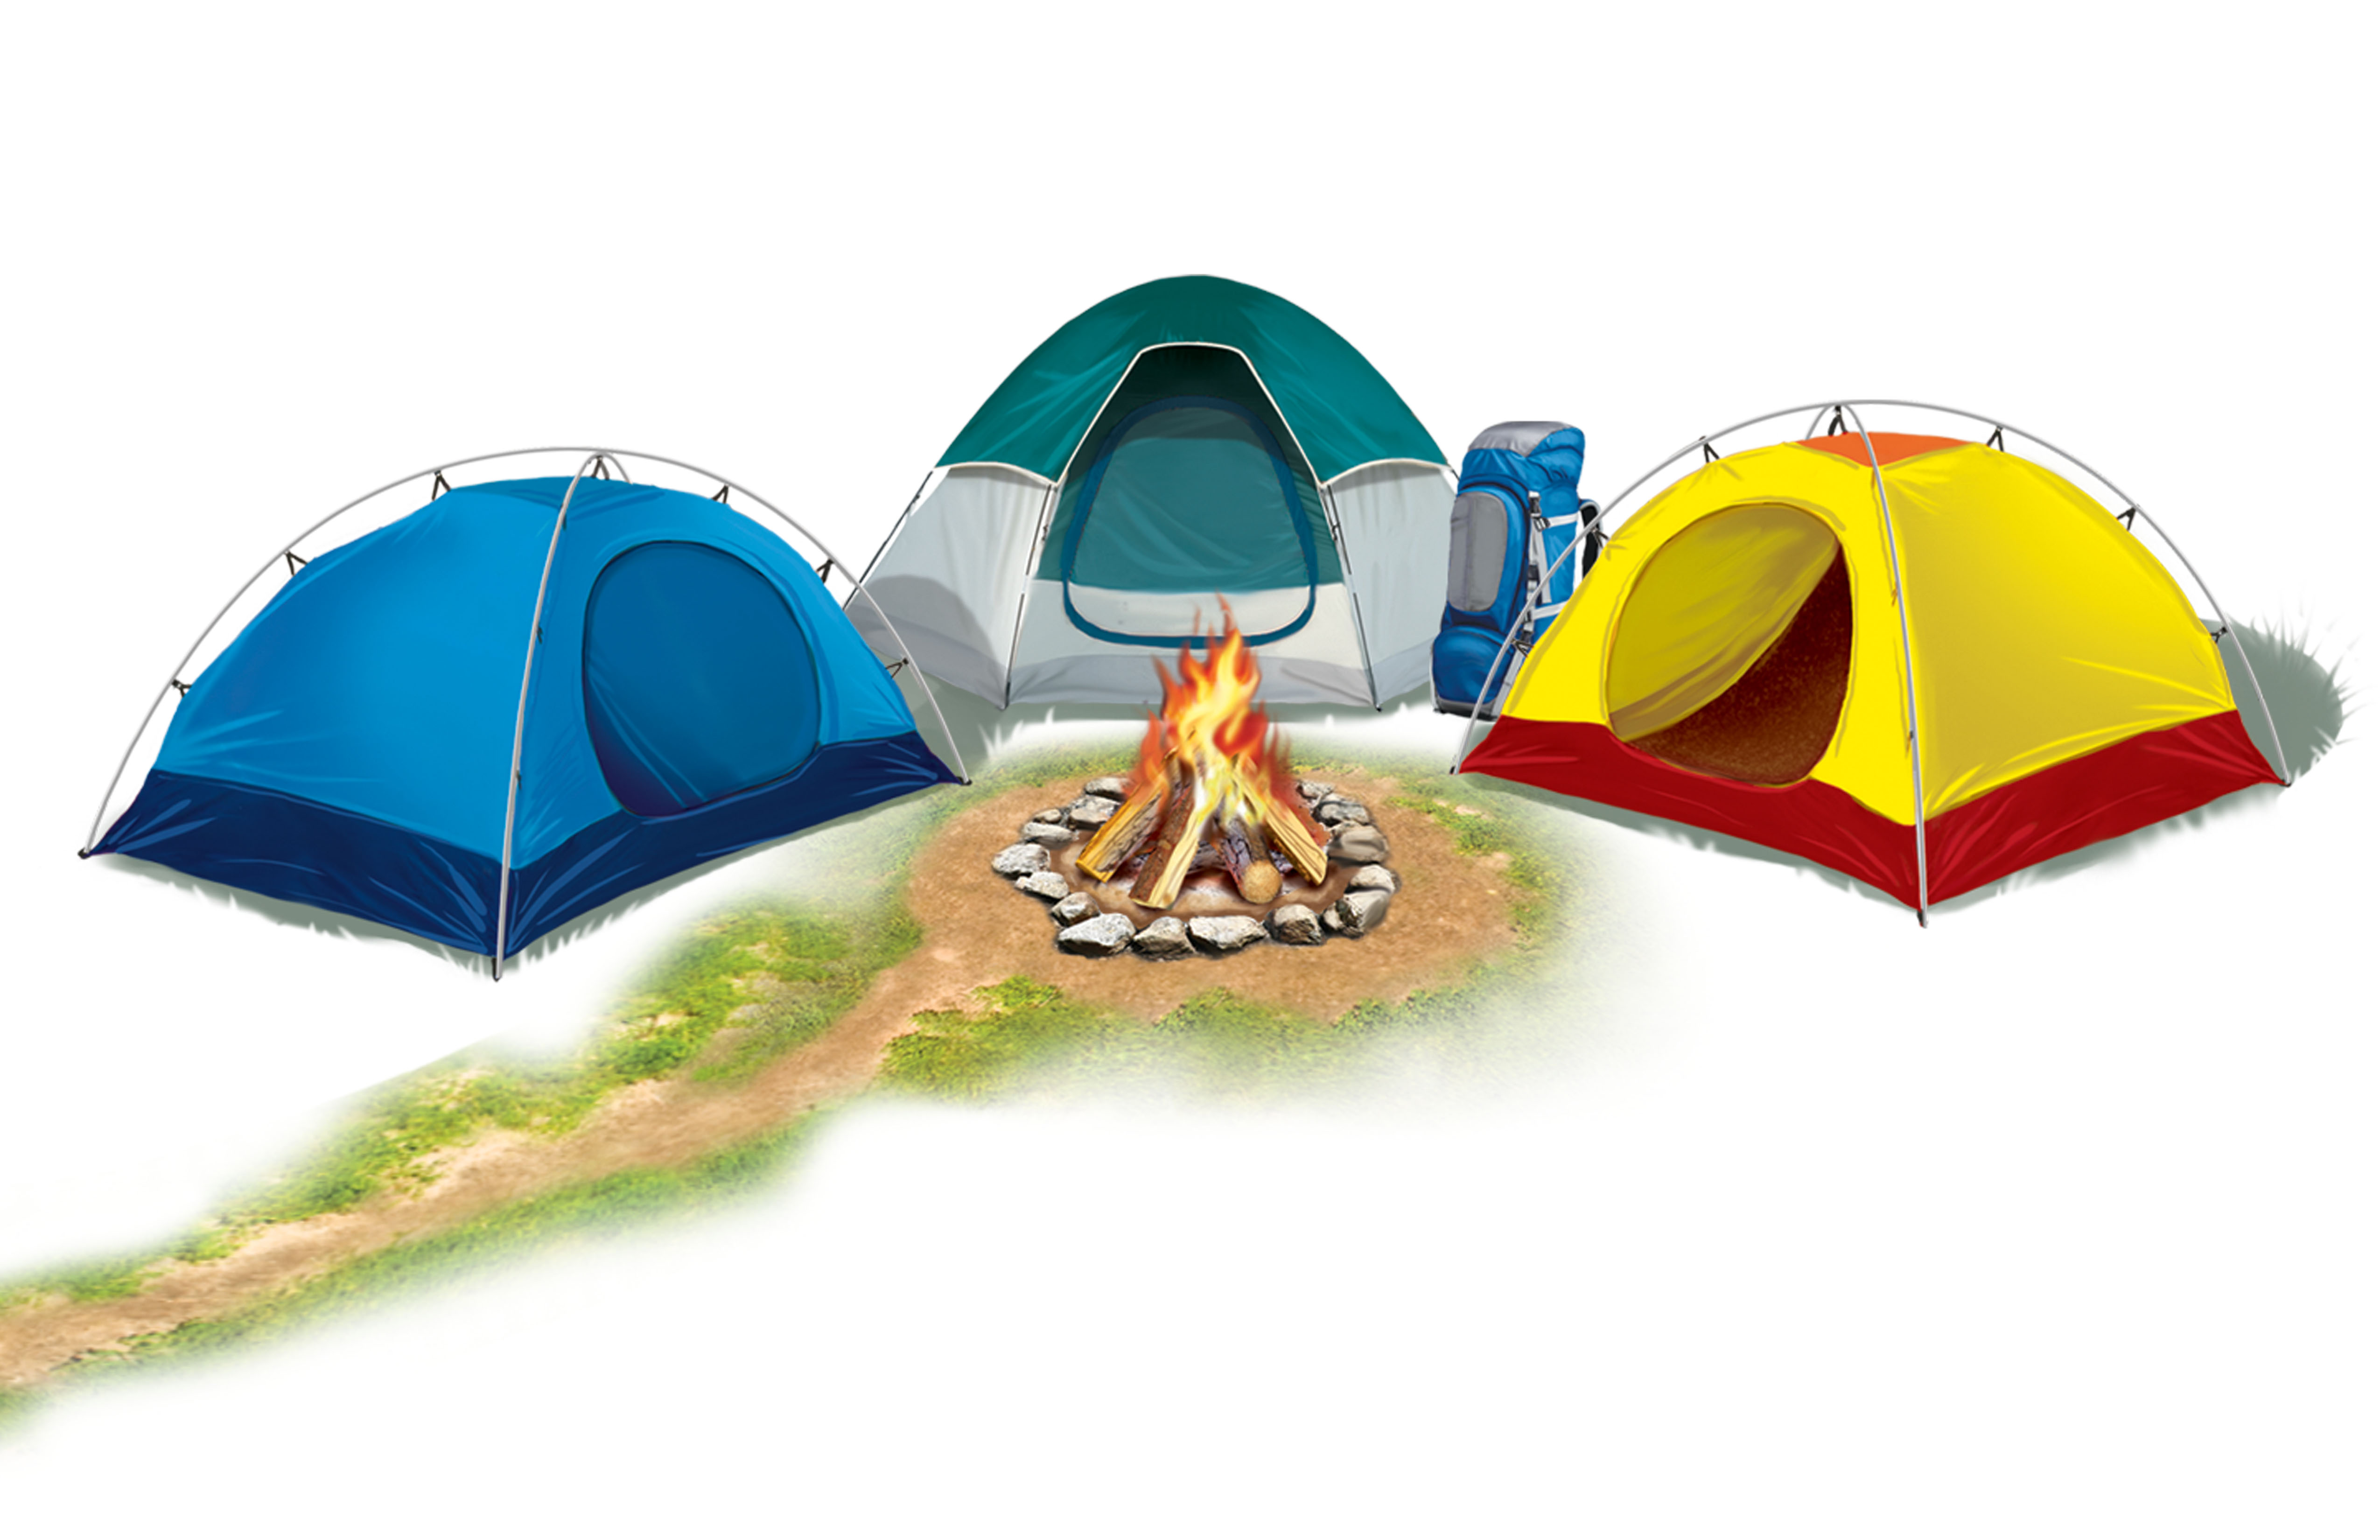 Camping Clipart - Clipart Kid